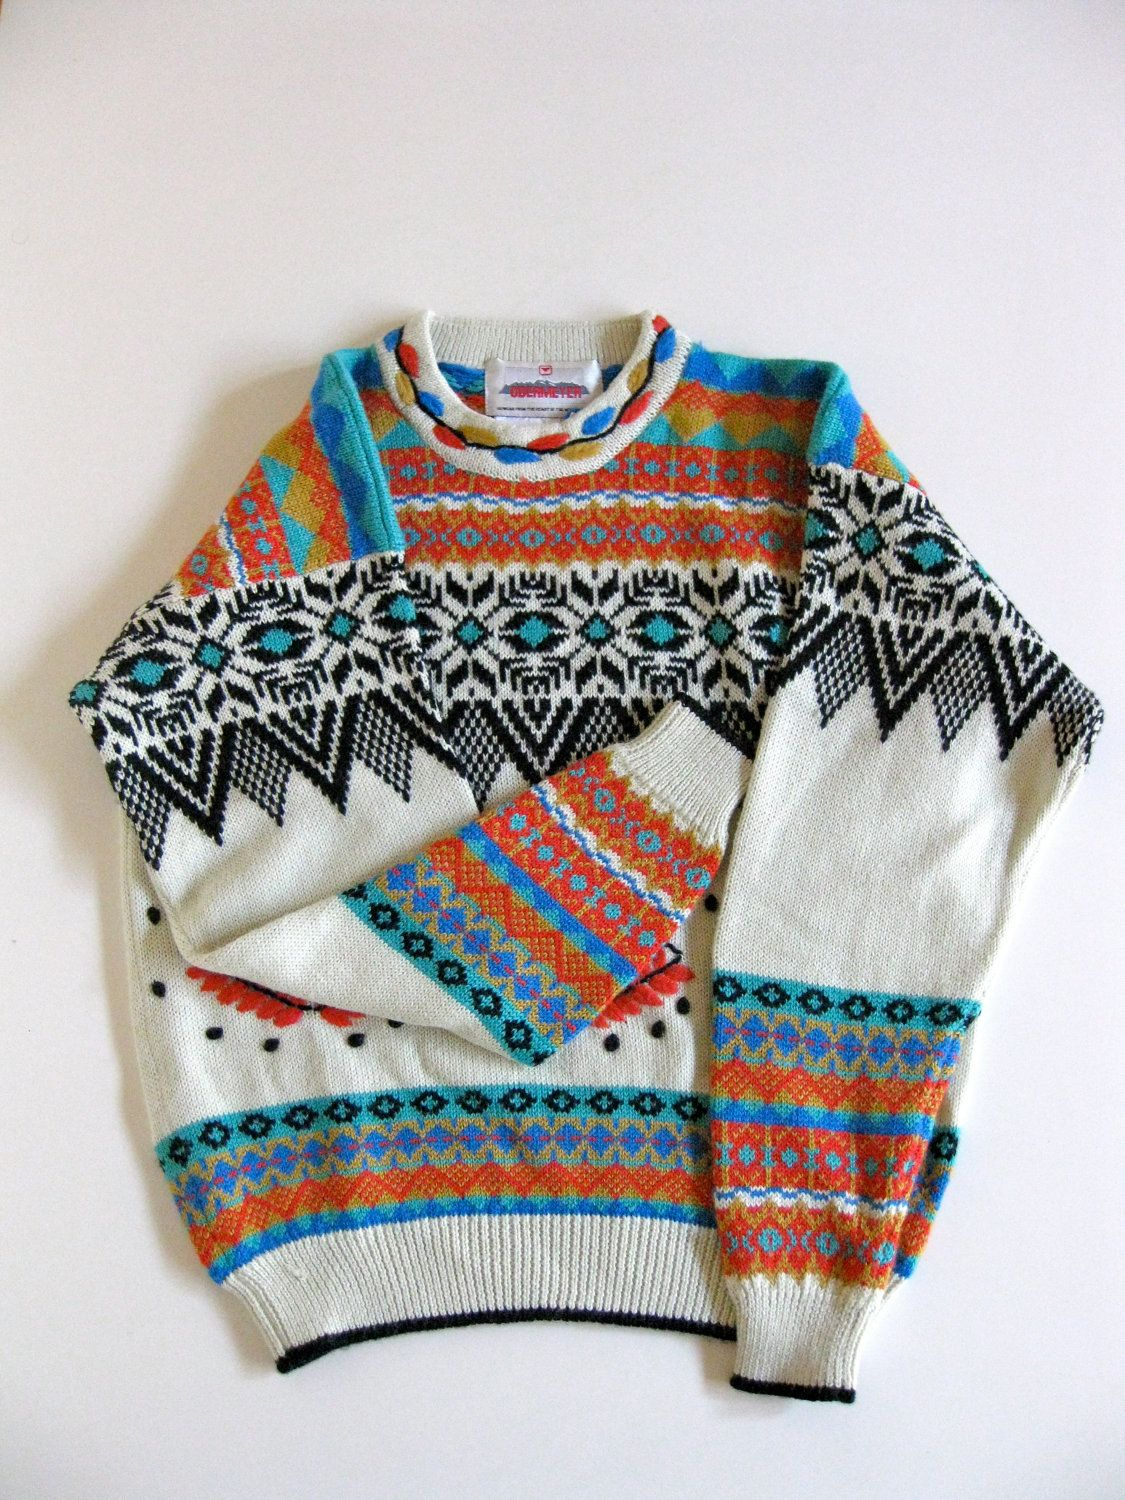 Knitting Patterns For Nordic Sweater : Vintage Obermeyer Ski Nordic Pattern Cozy Wool Sweater ...